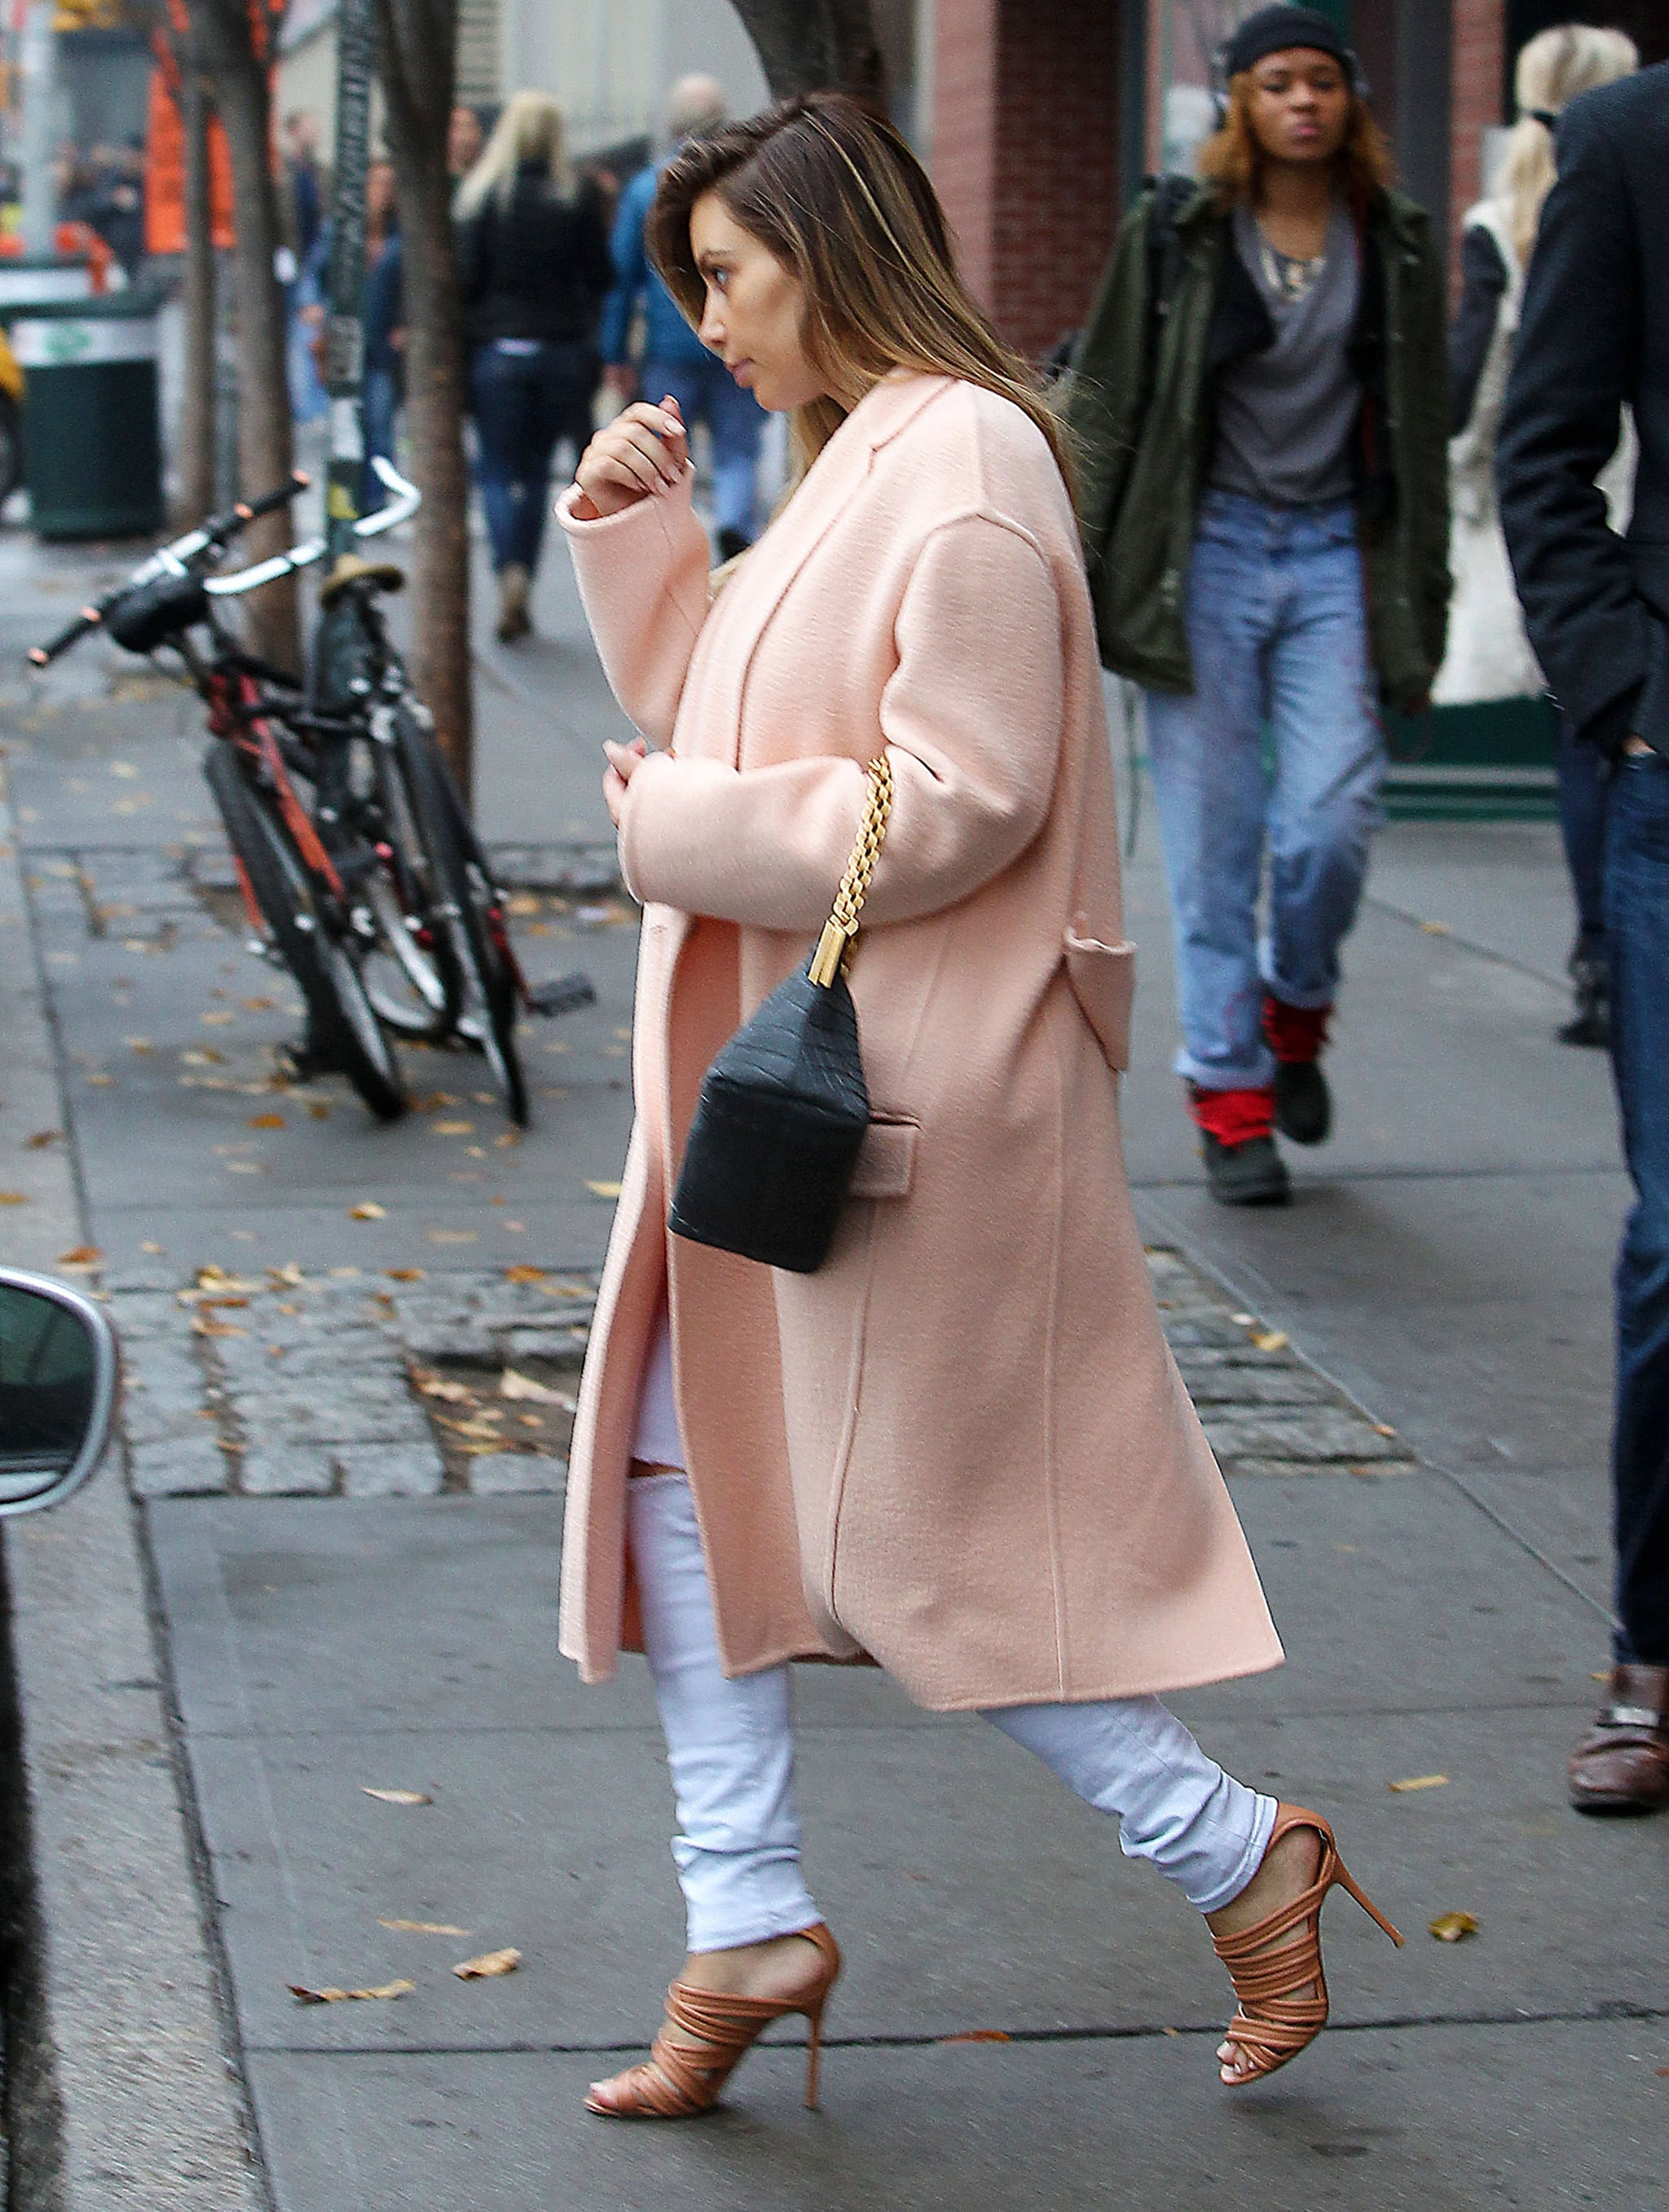 Kim Kardashian topped her monochrome ensemble with a plush pink Céline coat and strappy nude sandals in November 2013. Where to Wear: A drive-in movie.